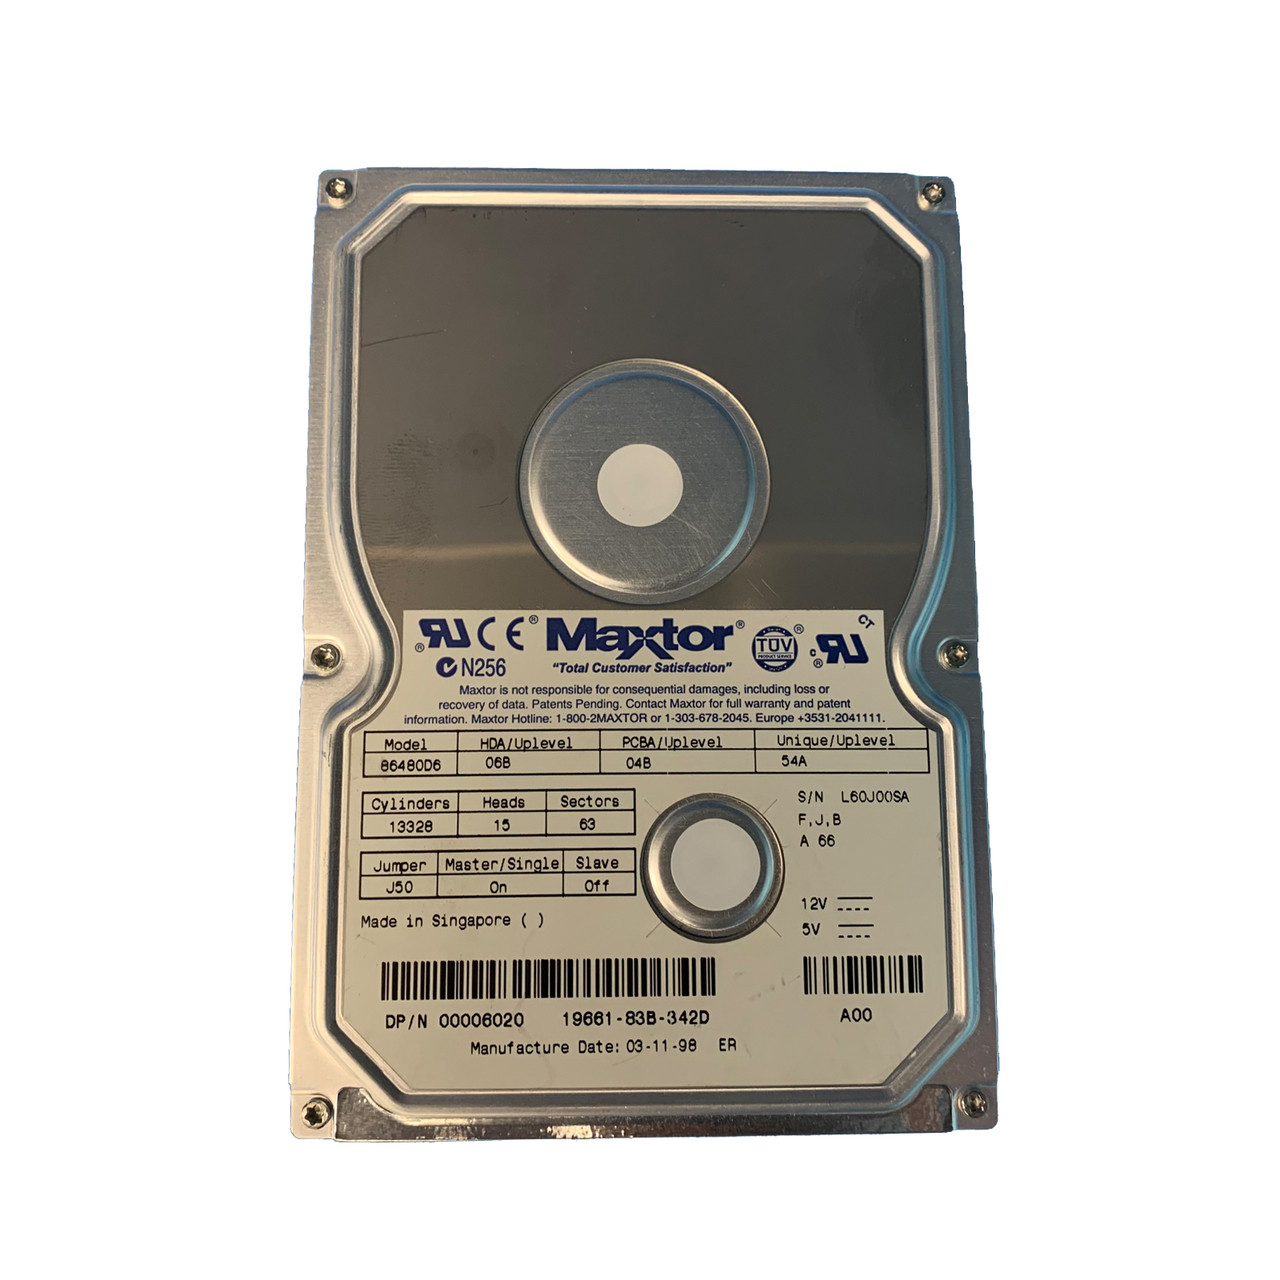 Maxtor Dell 86480D6 06020 6.4GB IDE Hard Drive TESTED